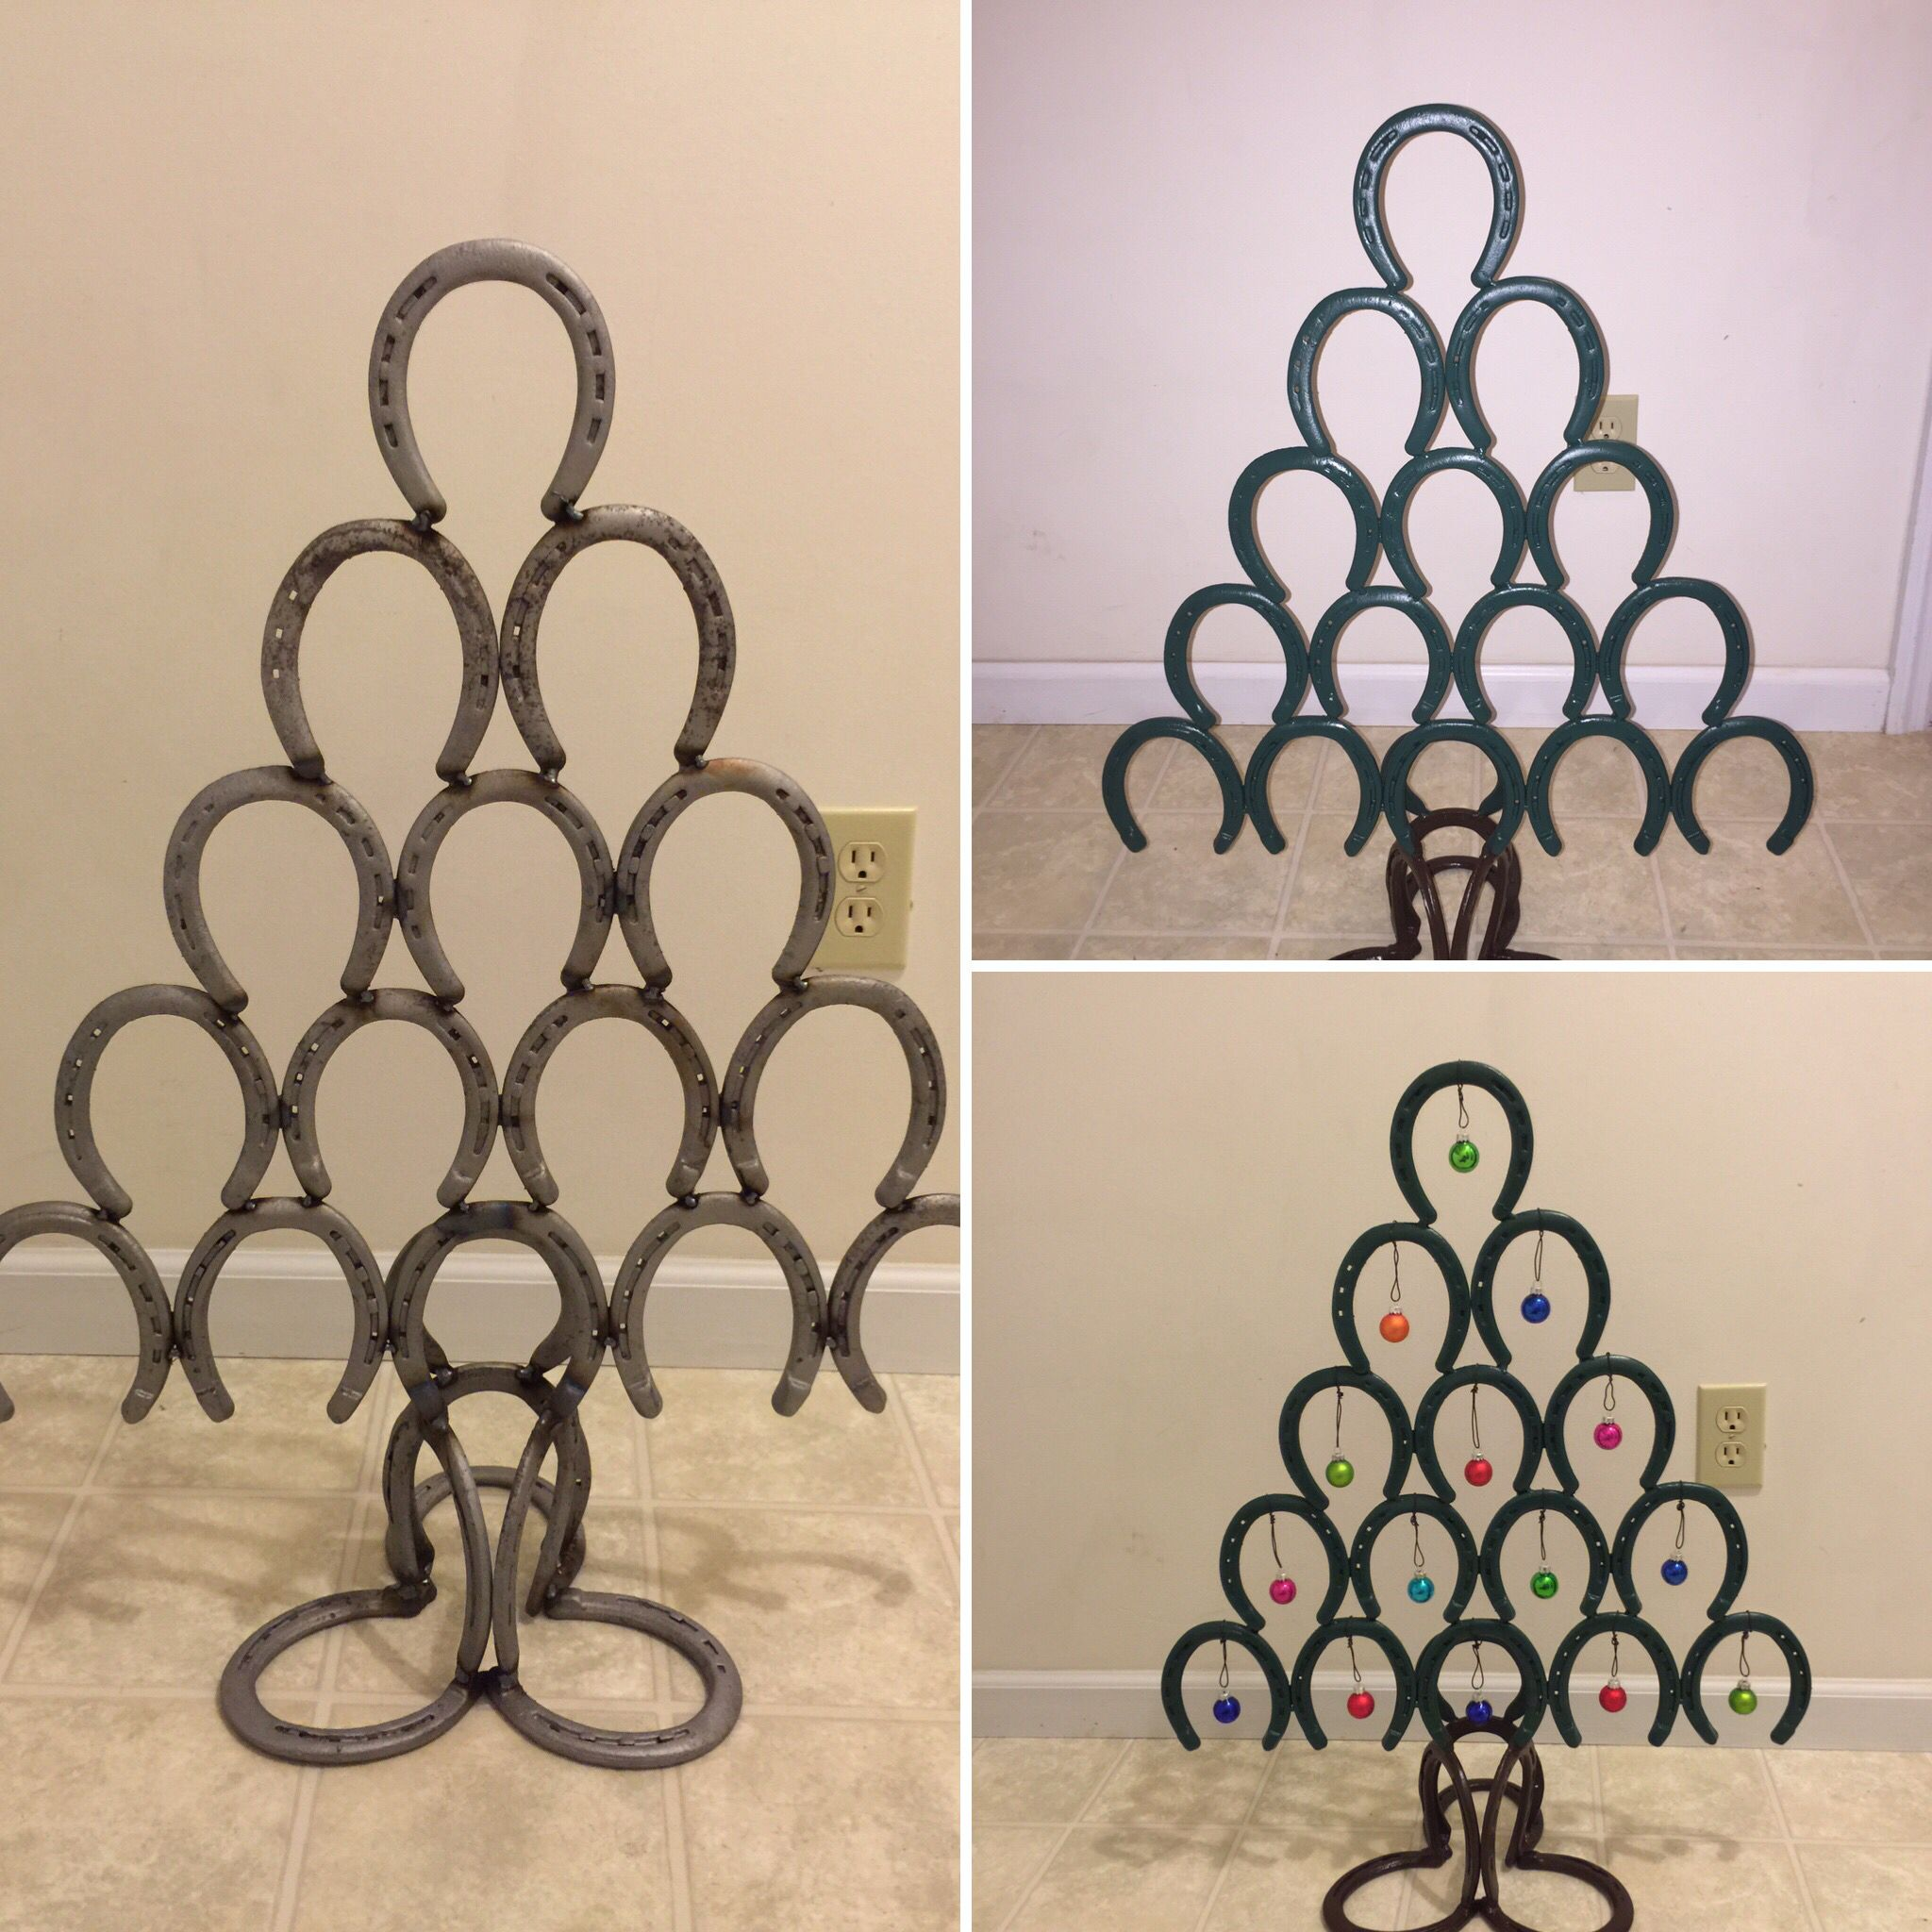 Christmas tree made from horseshoes.